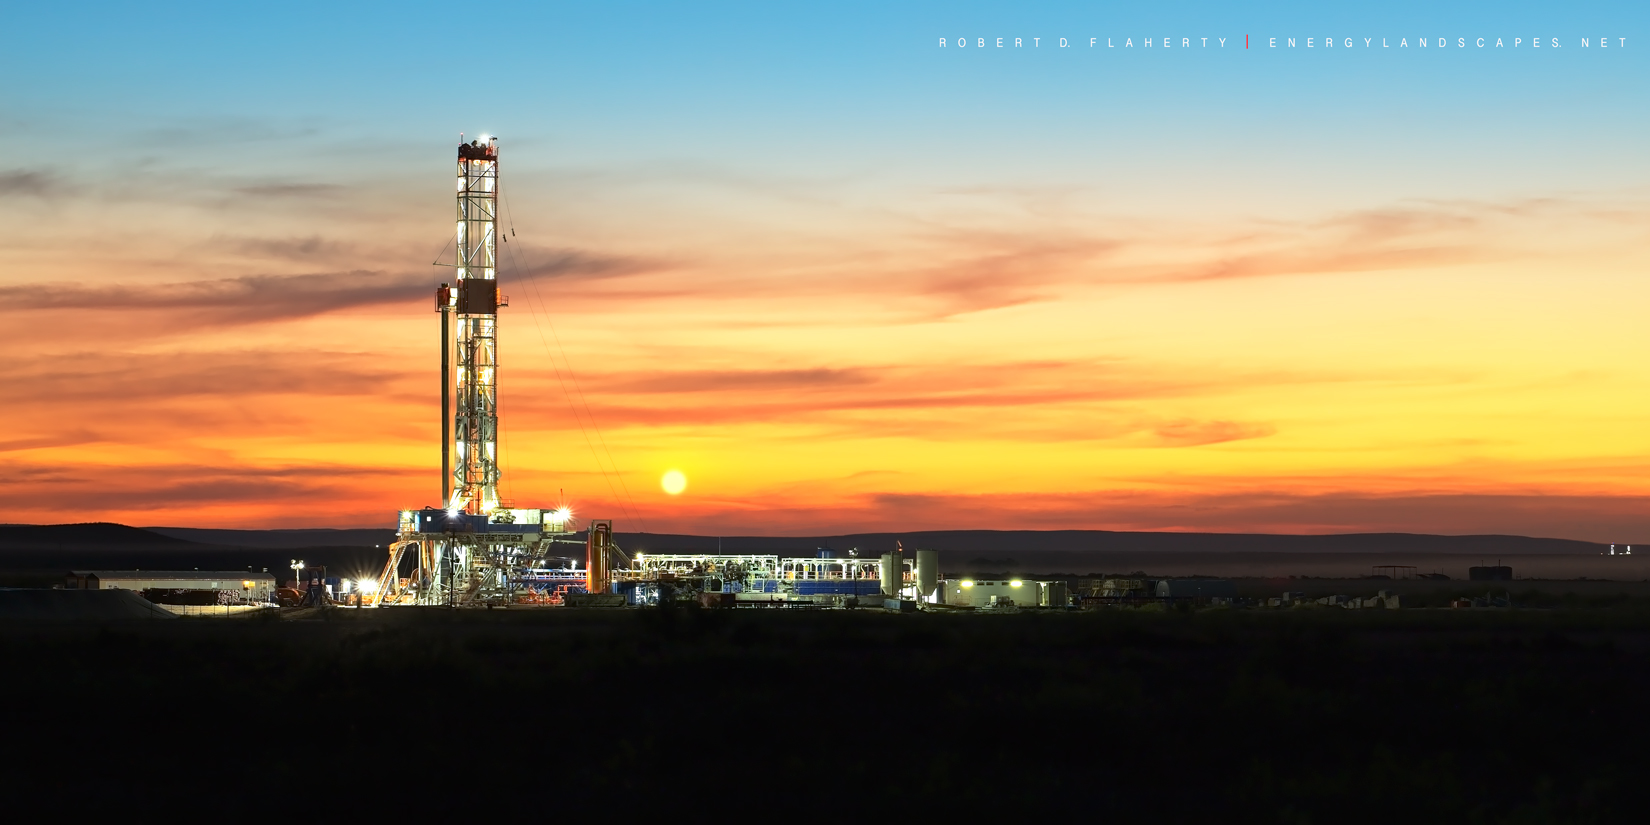 Patterson UTI, Patterson Drilling, drilling rig, panorama, high resolution, sunset, direction well, New Mexico, Delaware Basin, Permian Basin, Malaga New Mexico, September, Matador Resources, photo